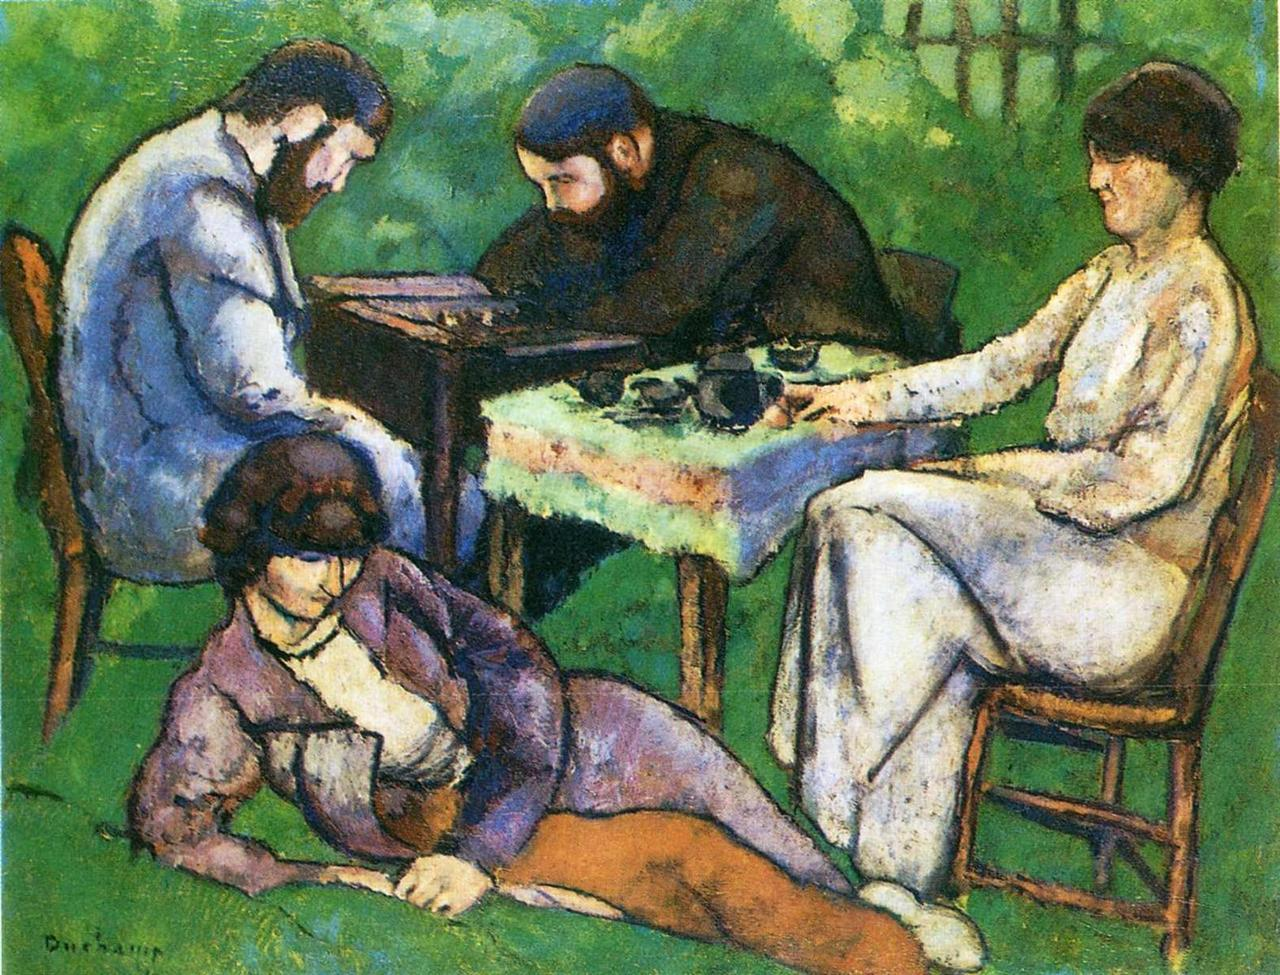 Marcel Duchamp (France,1887-1968)